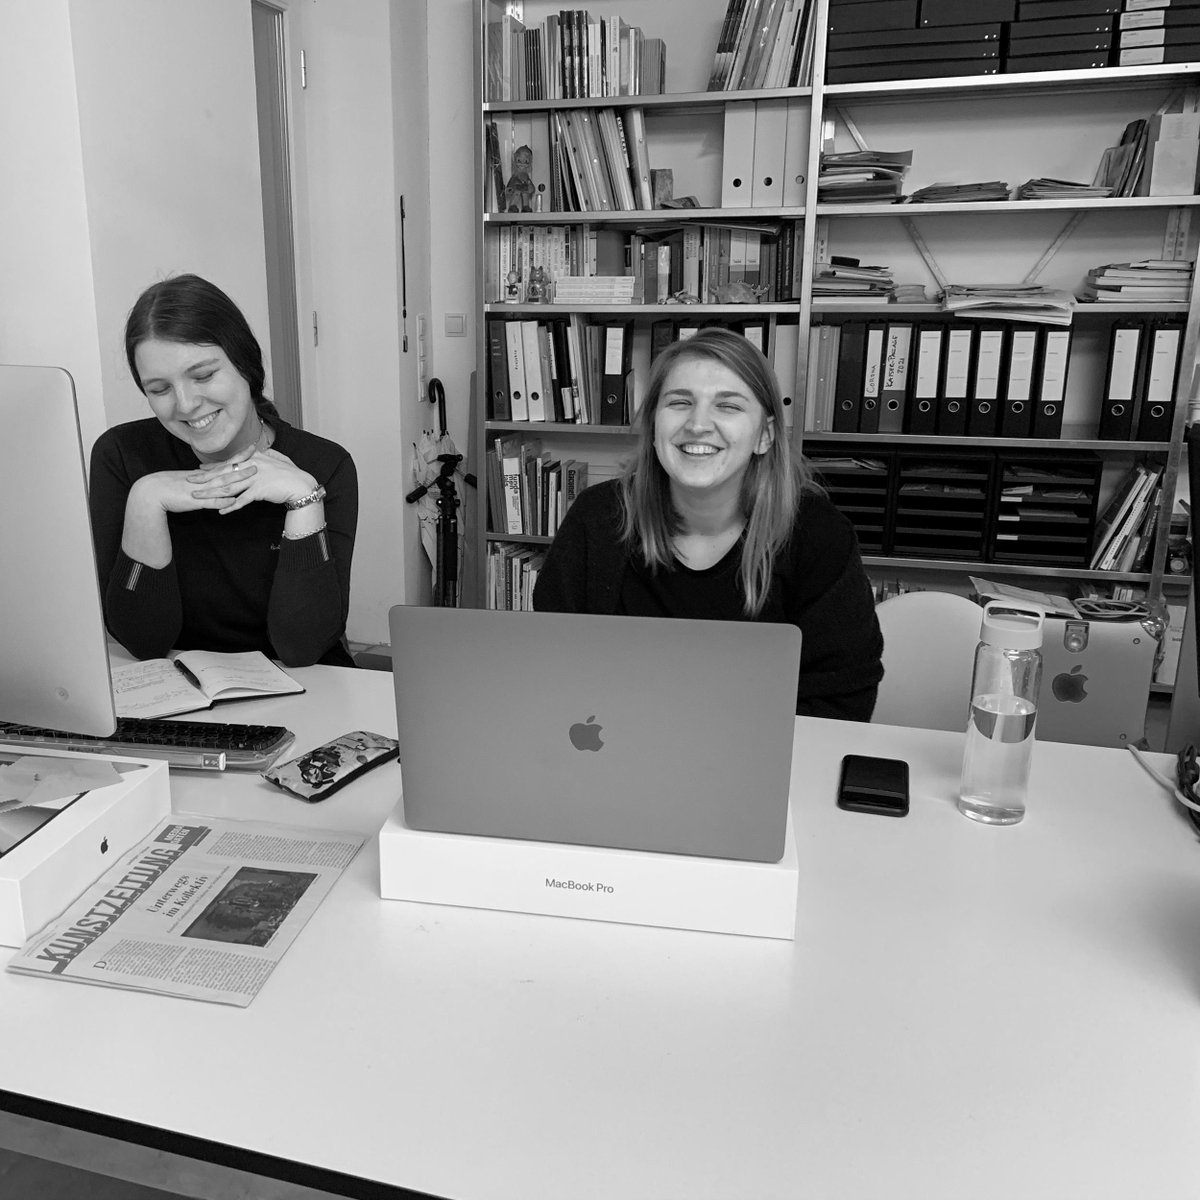 We are saying goodbye to our long-term intern Viktoria, thank you for the past 6 months!  ☀️ Jana will try her very best to keep up your amazing work.  ✏️   #gallery #kunstinbonn #contemporaryart #artgallery #exhibition #intern #internship #behindthescenes